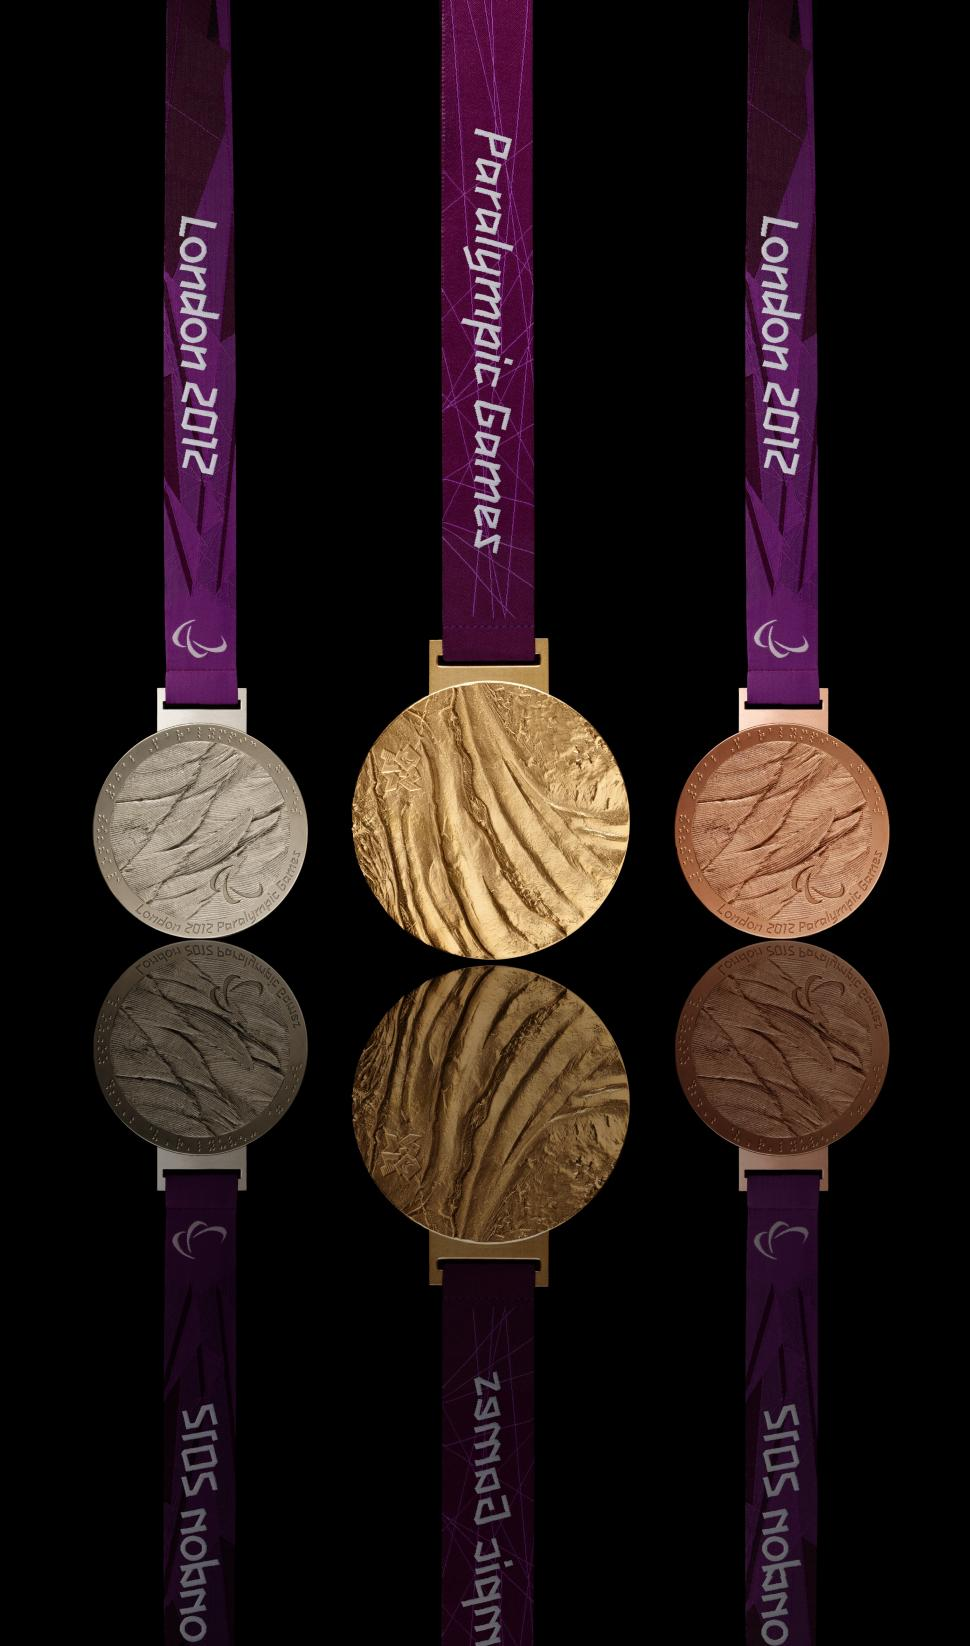 London 2012 Paralympic medals (copyright LOCOG)